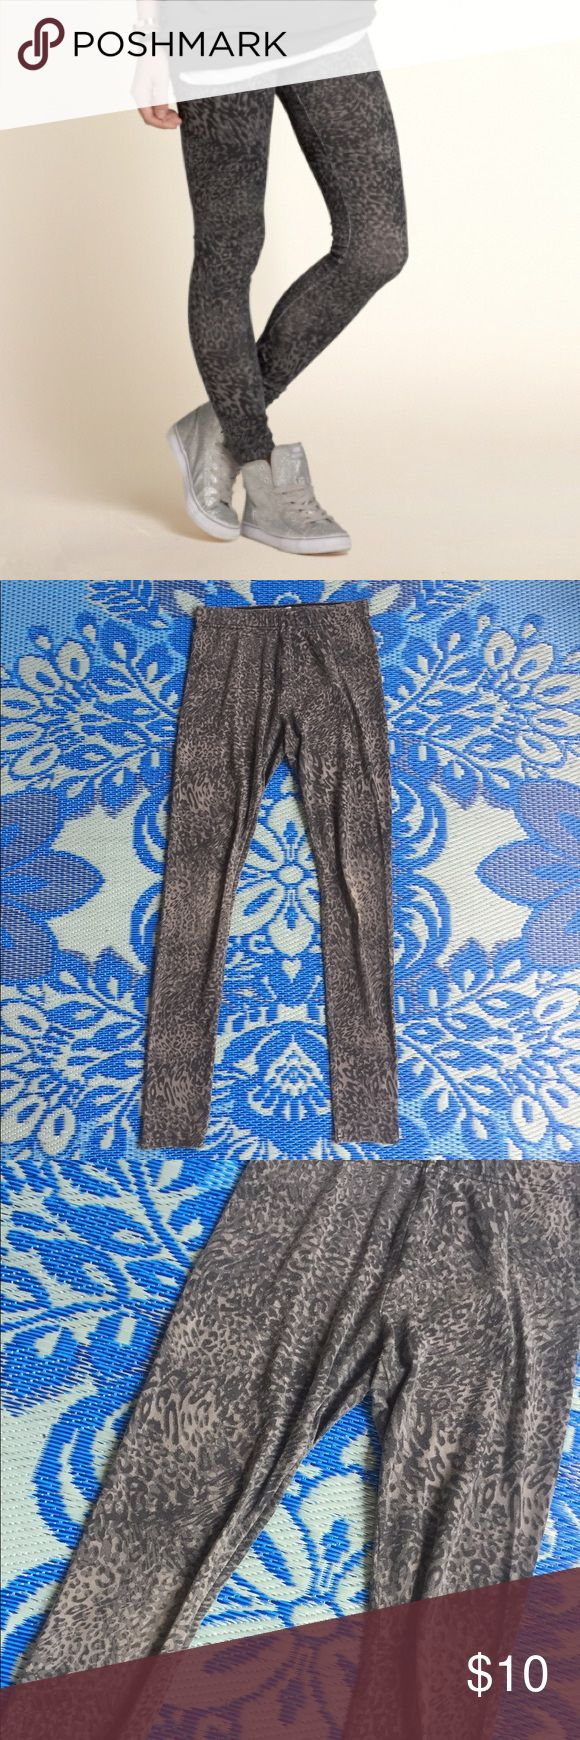 Grey Leopard Print Leggings Stretchy comfy cotton leggings in a grey leopard print! Size XS. Pre-loved, has some pilling but otherwise in great condition! Bundle to save :) Hollister Pants Leggings